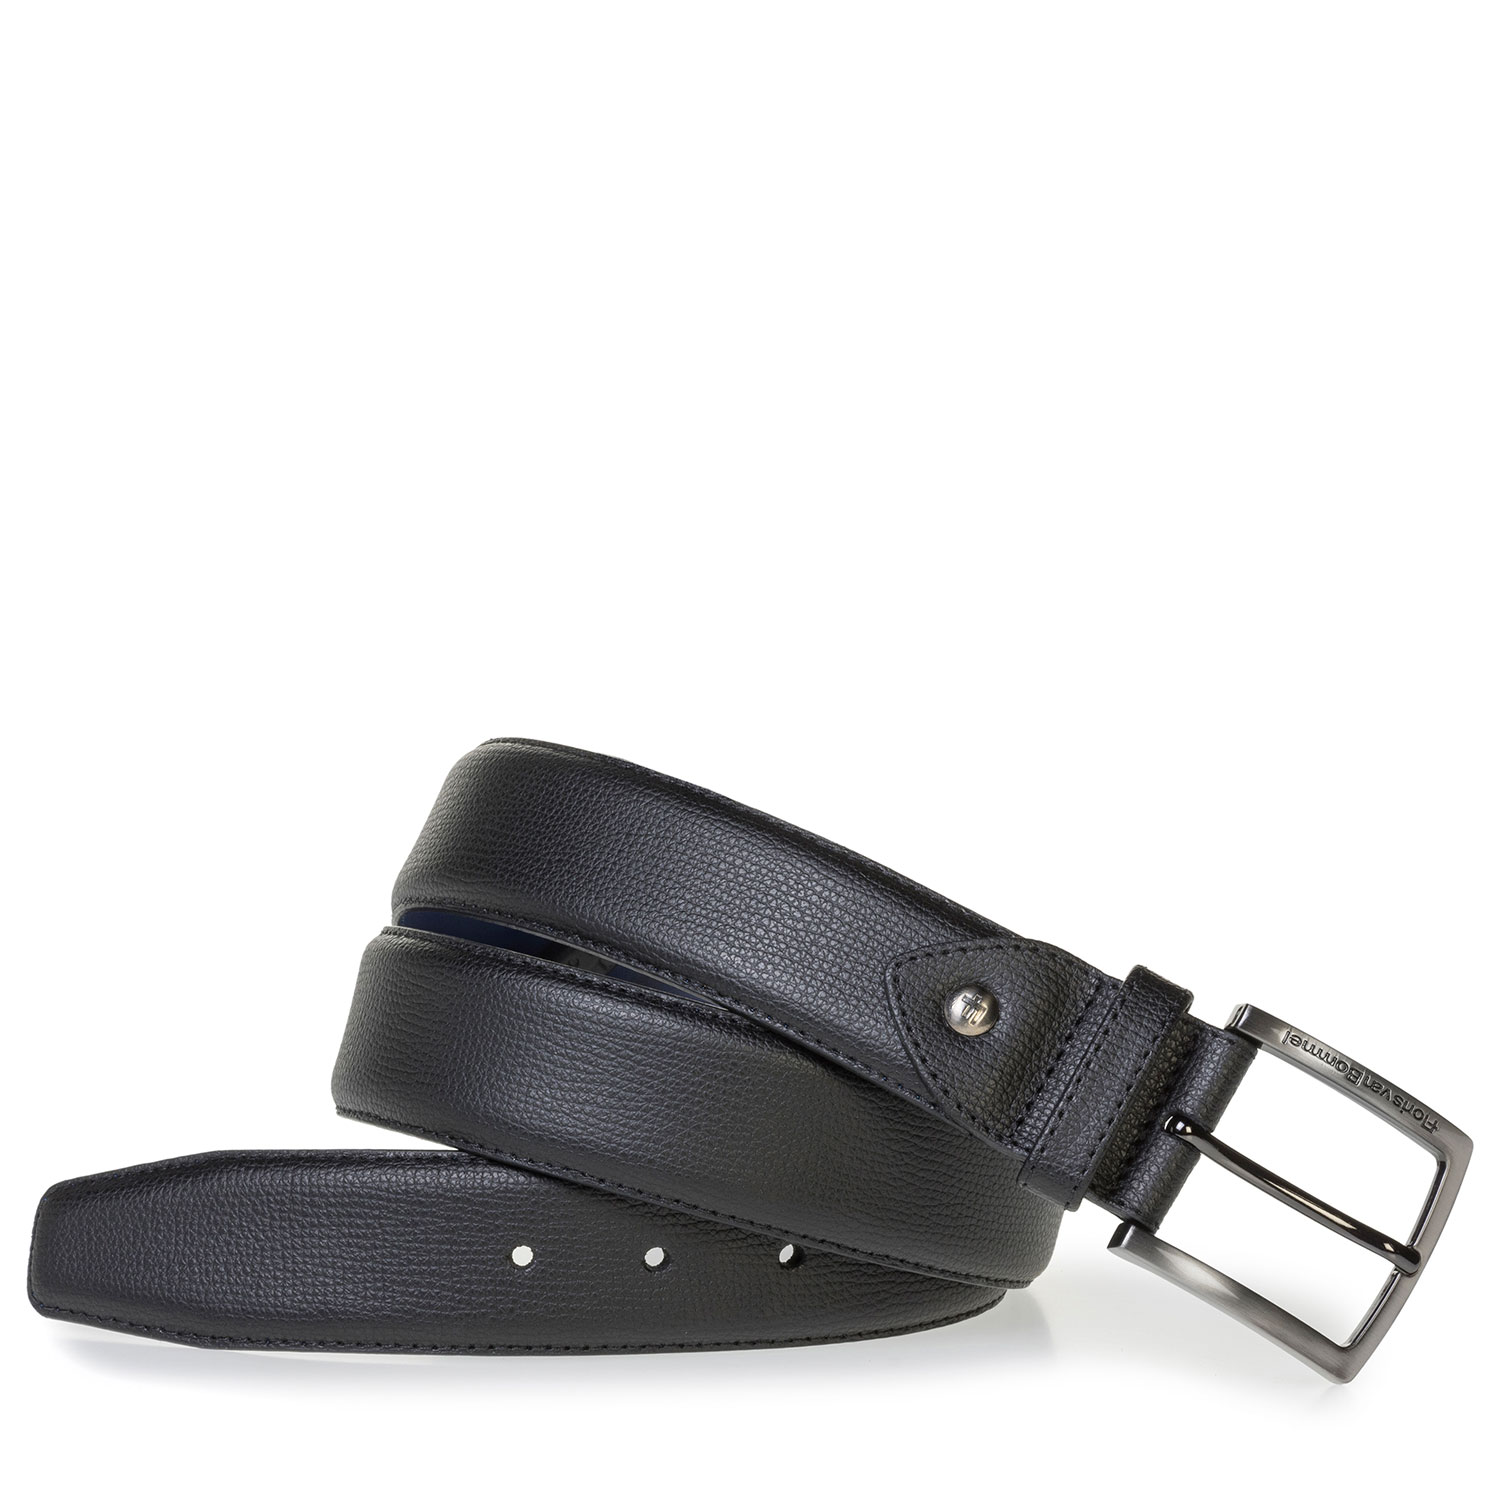 75202/48 - Black leather belt with print